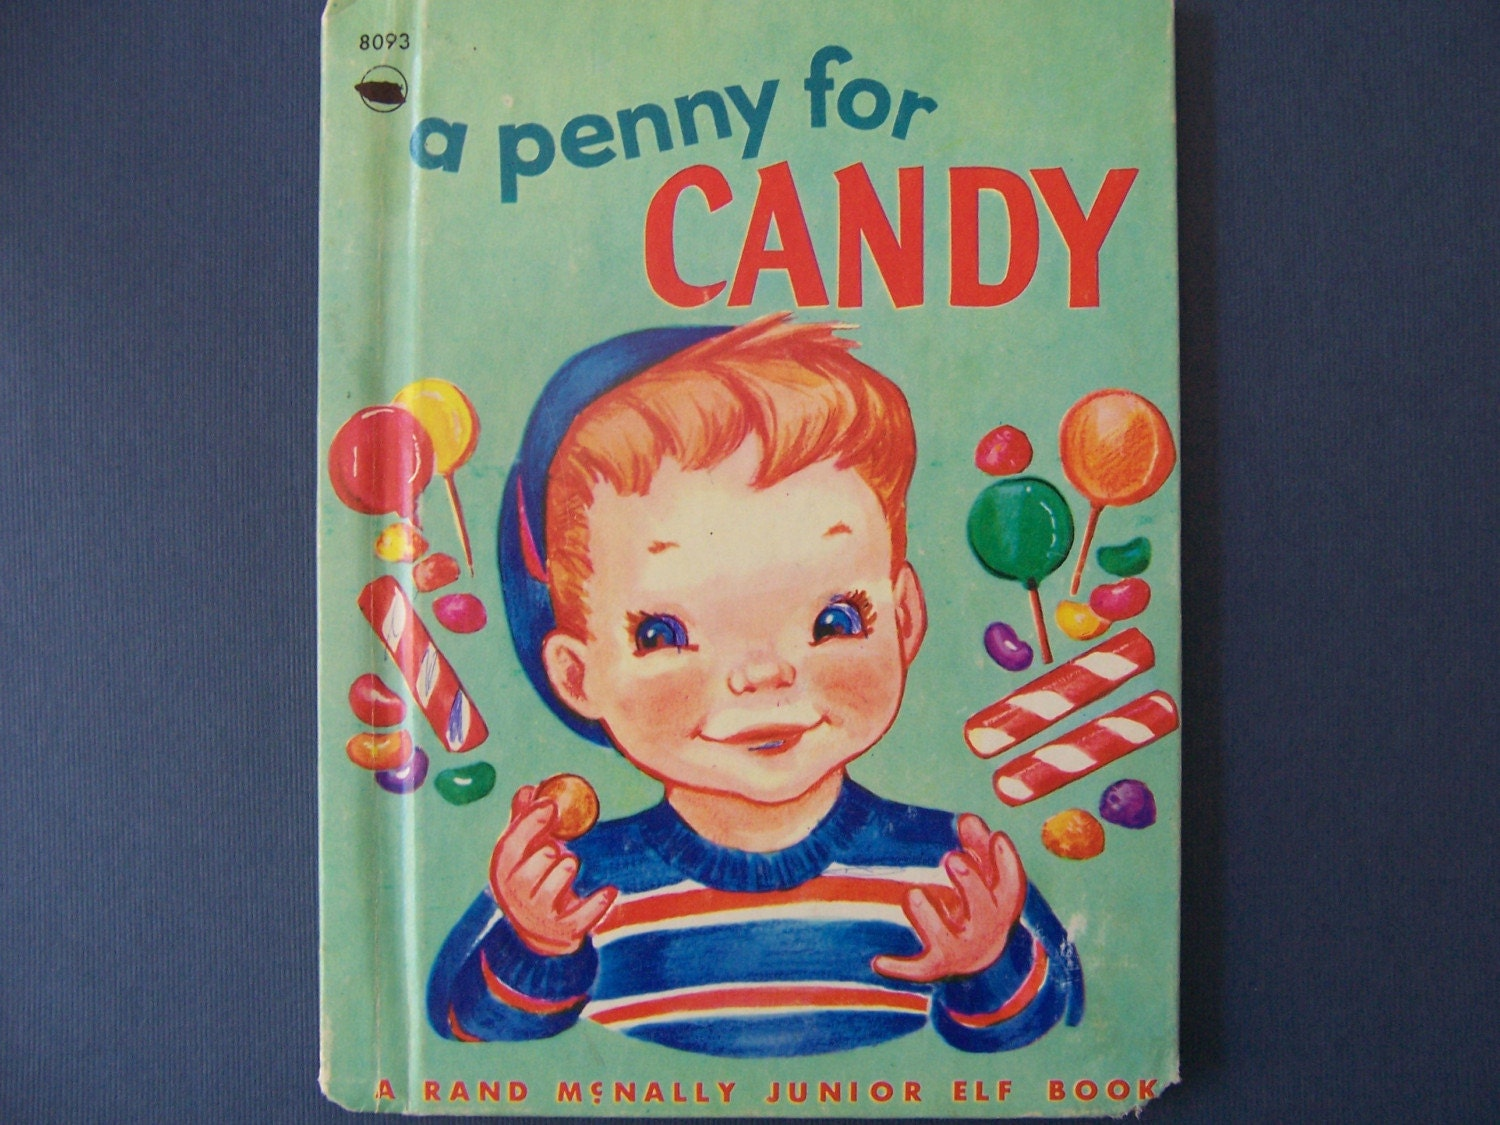 Vintage 1940's Children's Book A Penny for Candy